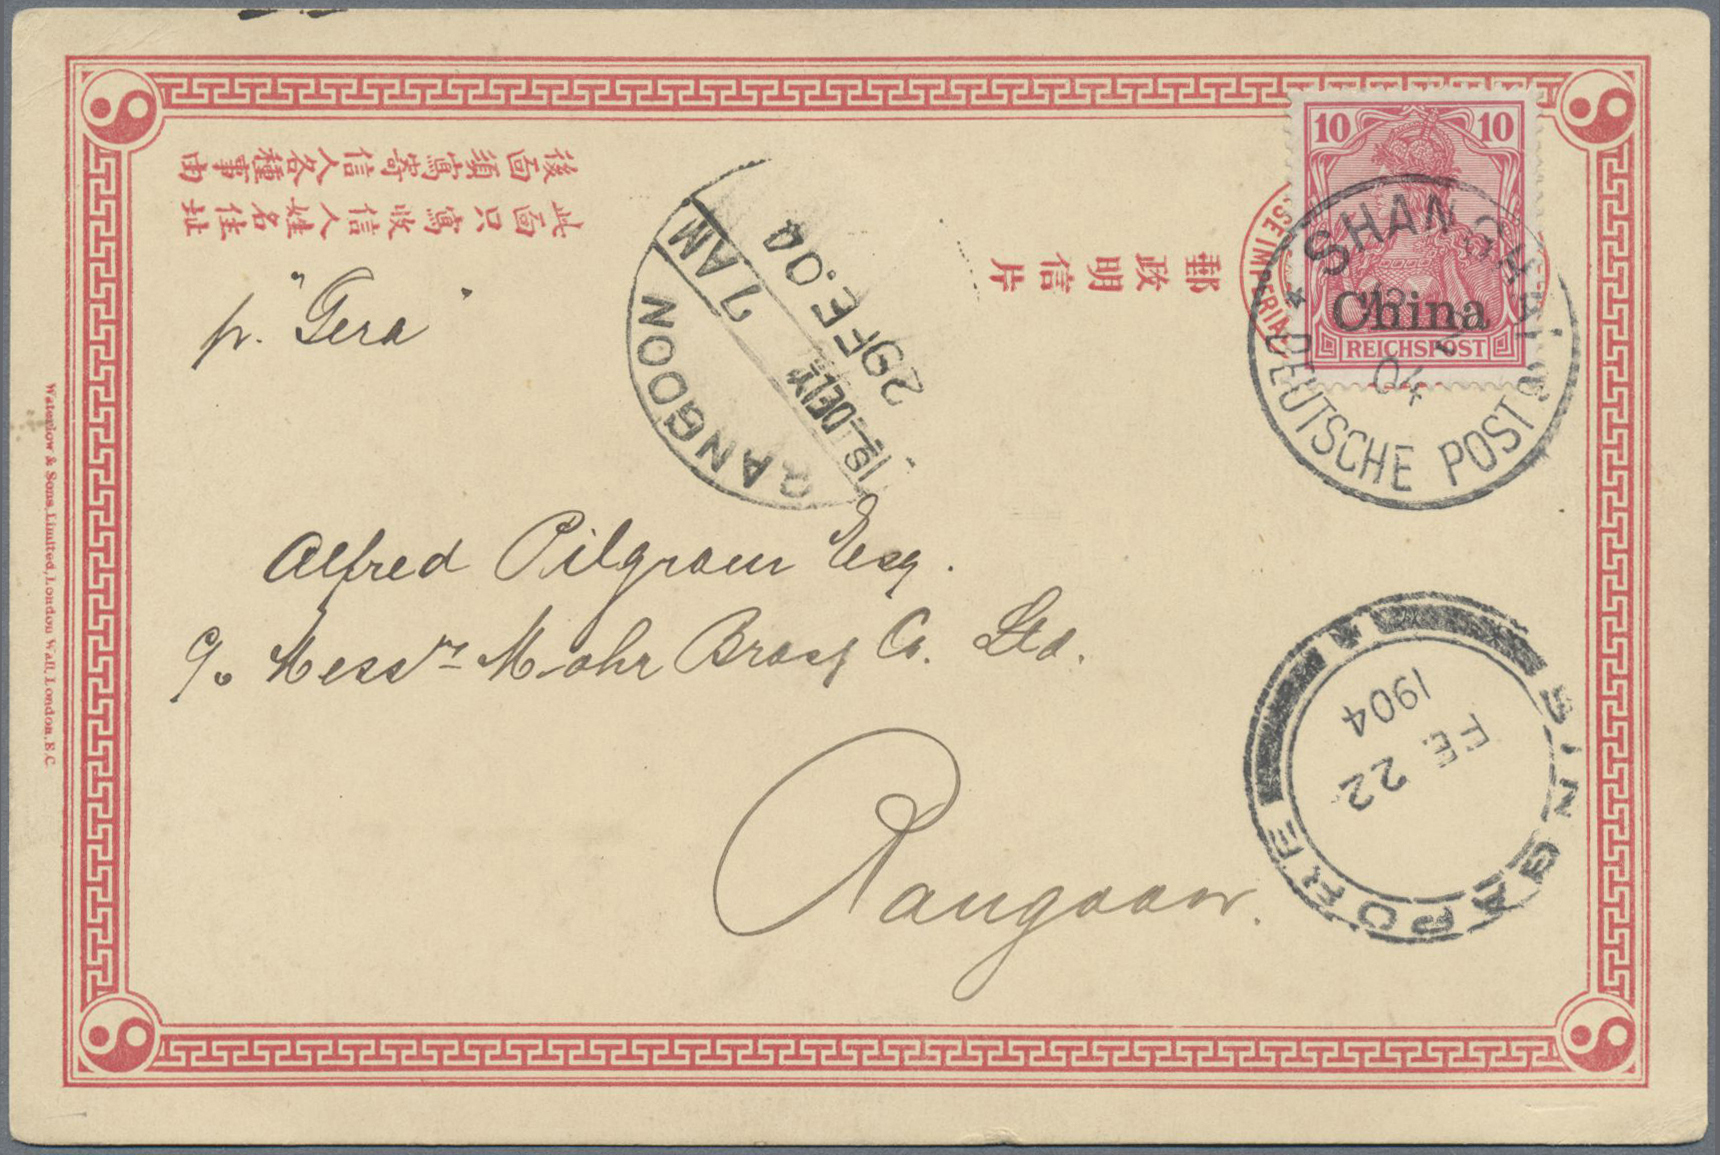 Lot 18431 - deutsche post in china  -  Auktionshaus Christoph Gärtner GmbH & Co. KG Auction #40 Germany, Picture Post Cards, Collections Overseas, Thematics